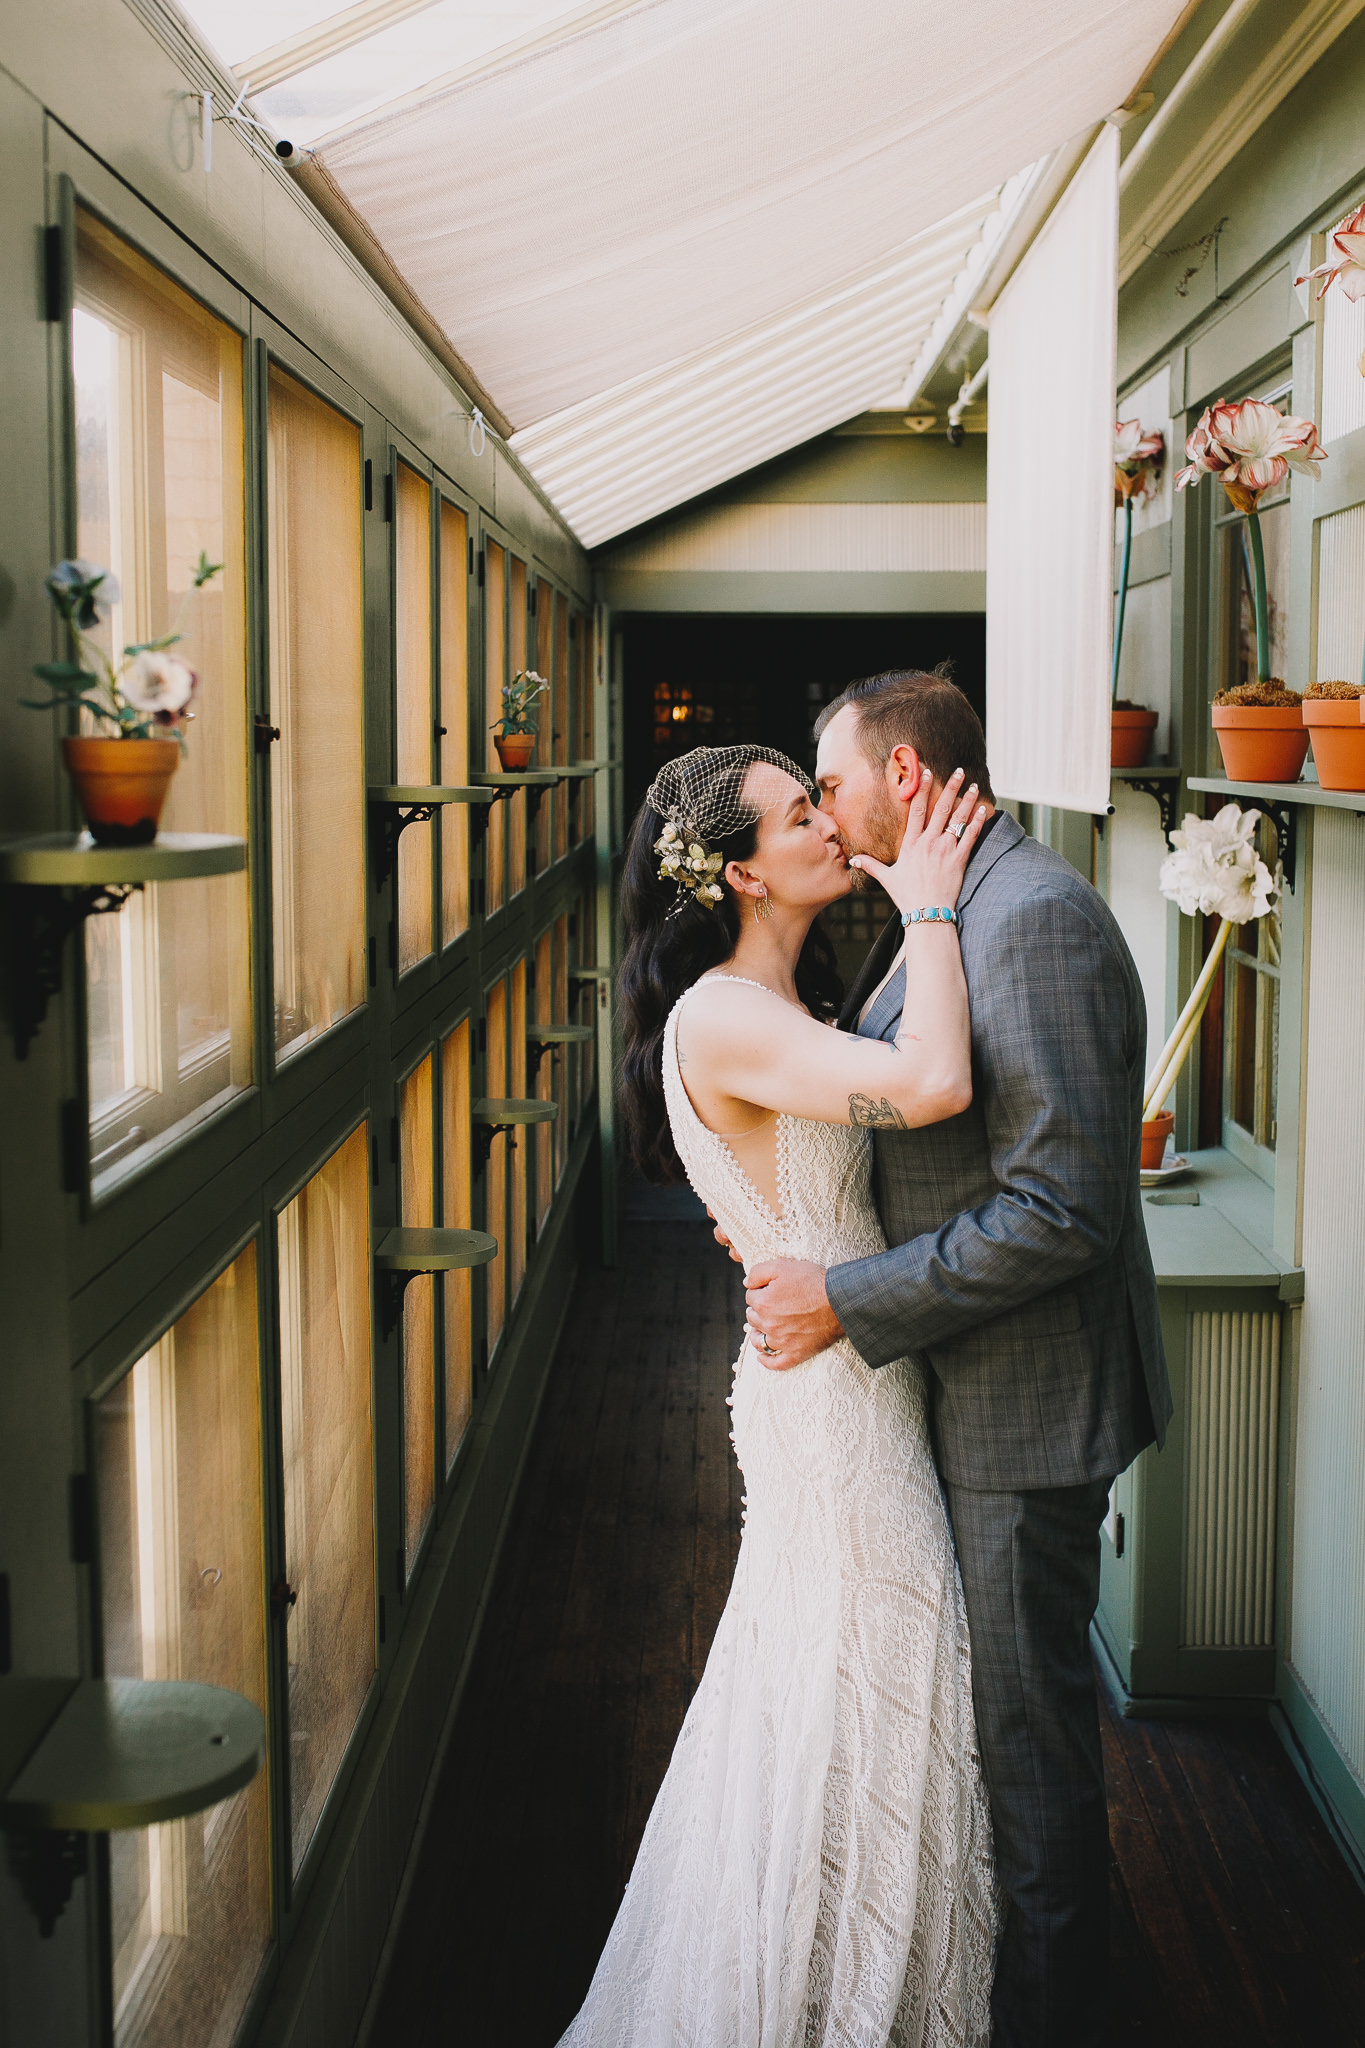 Archer Inspired Photography Sara and Aaron Winchester Mystery House NorCal San Jose California Wedding Photographer-288.jpg